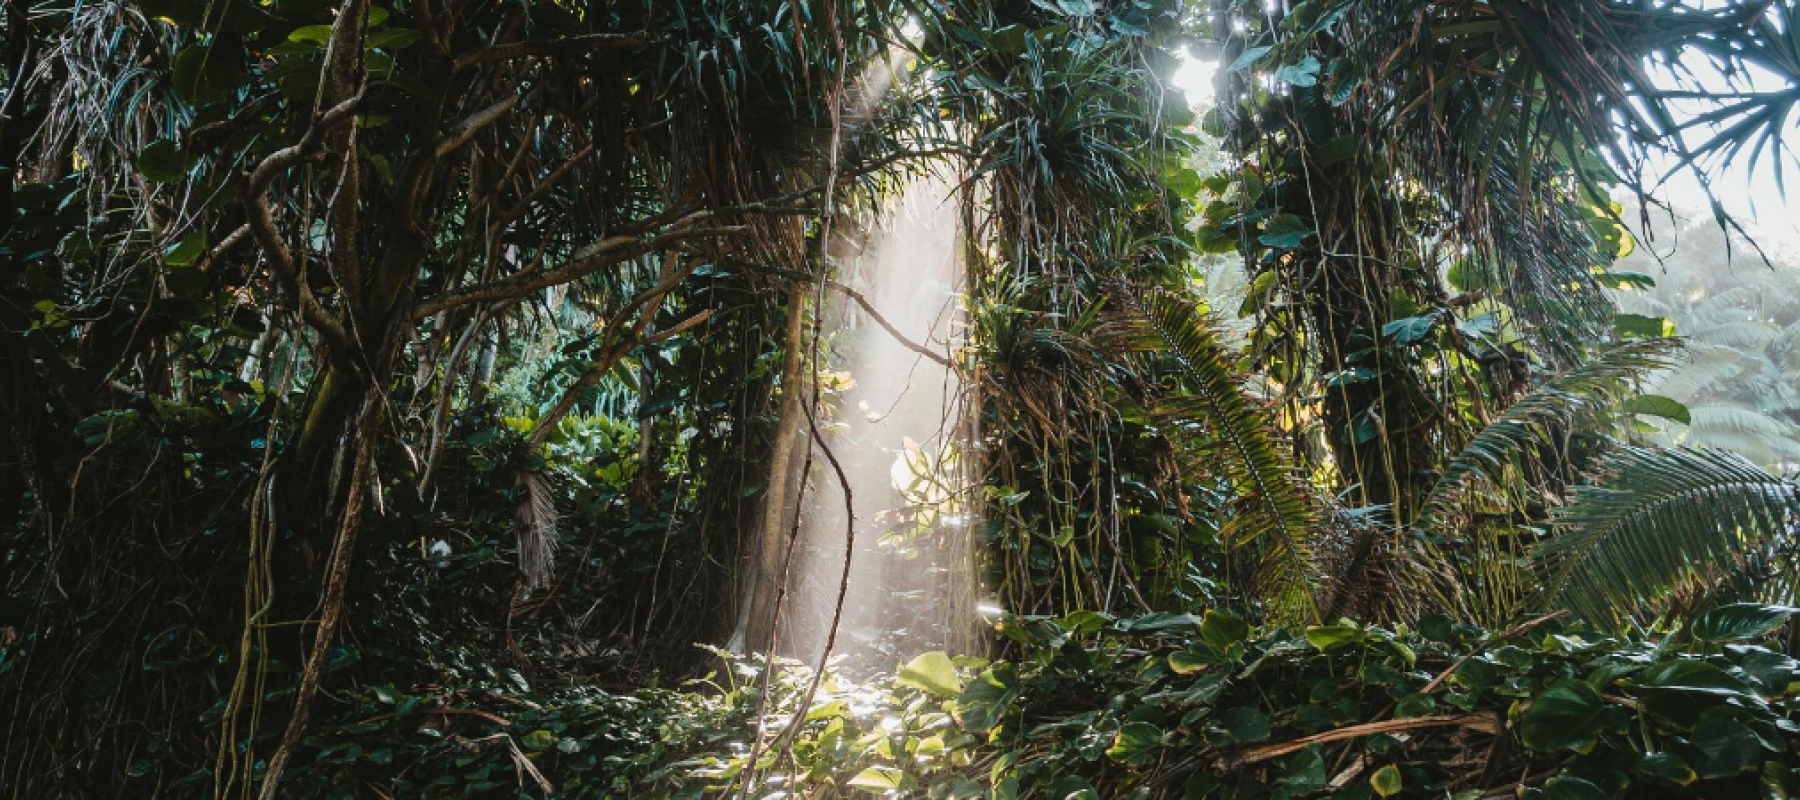 Rainforest and sunlight